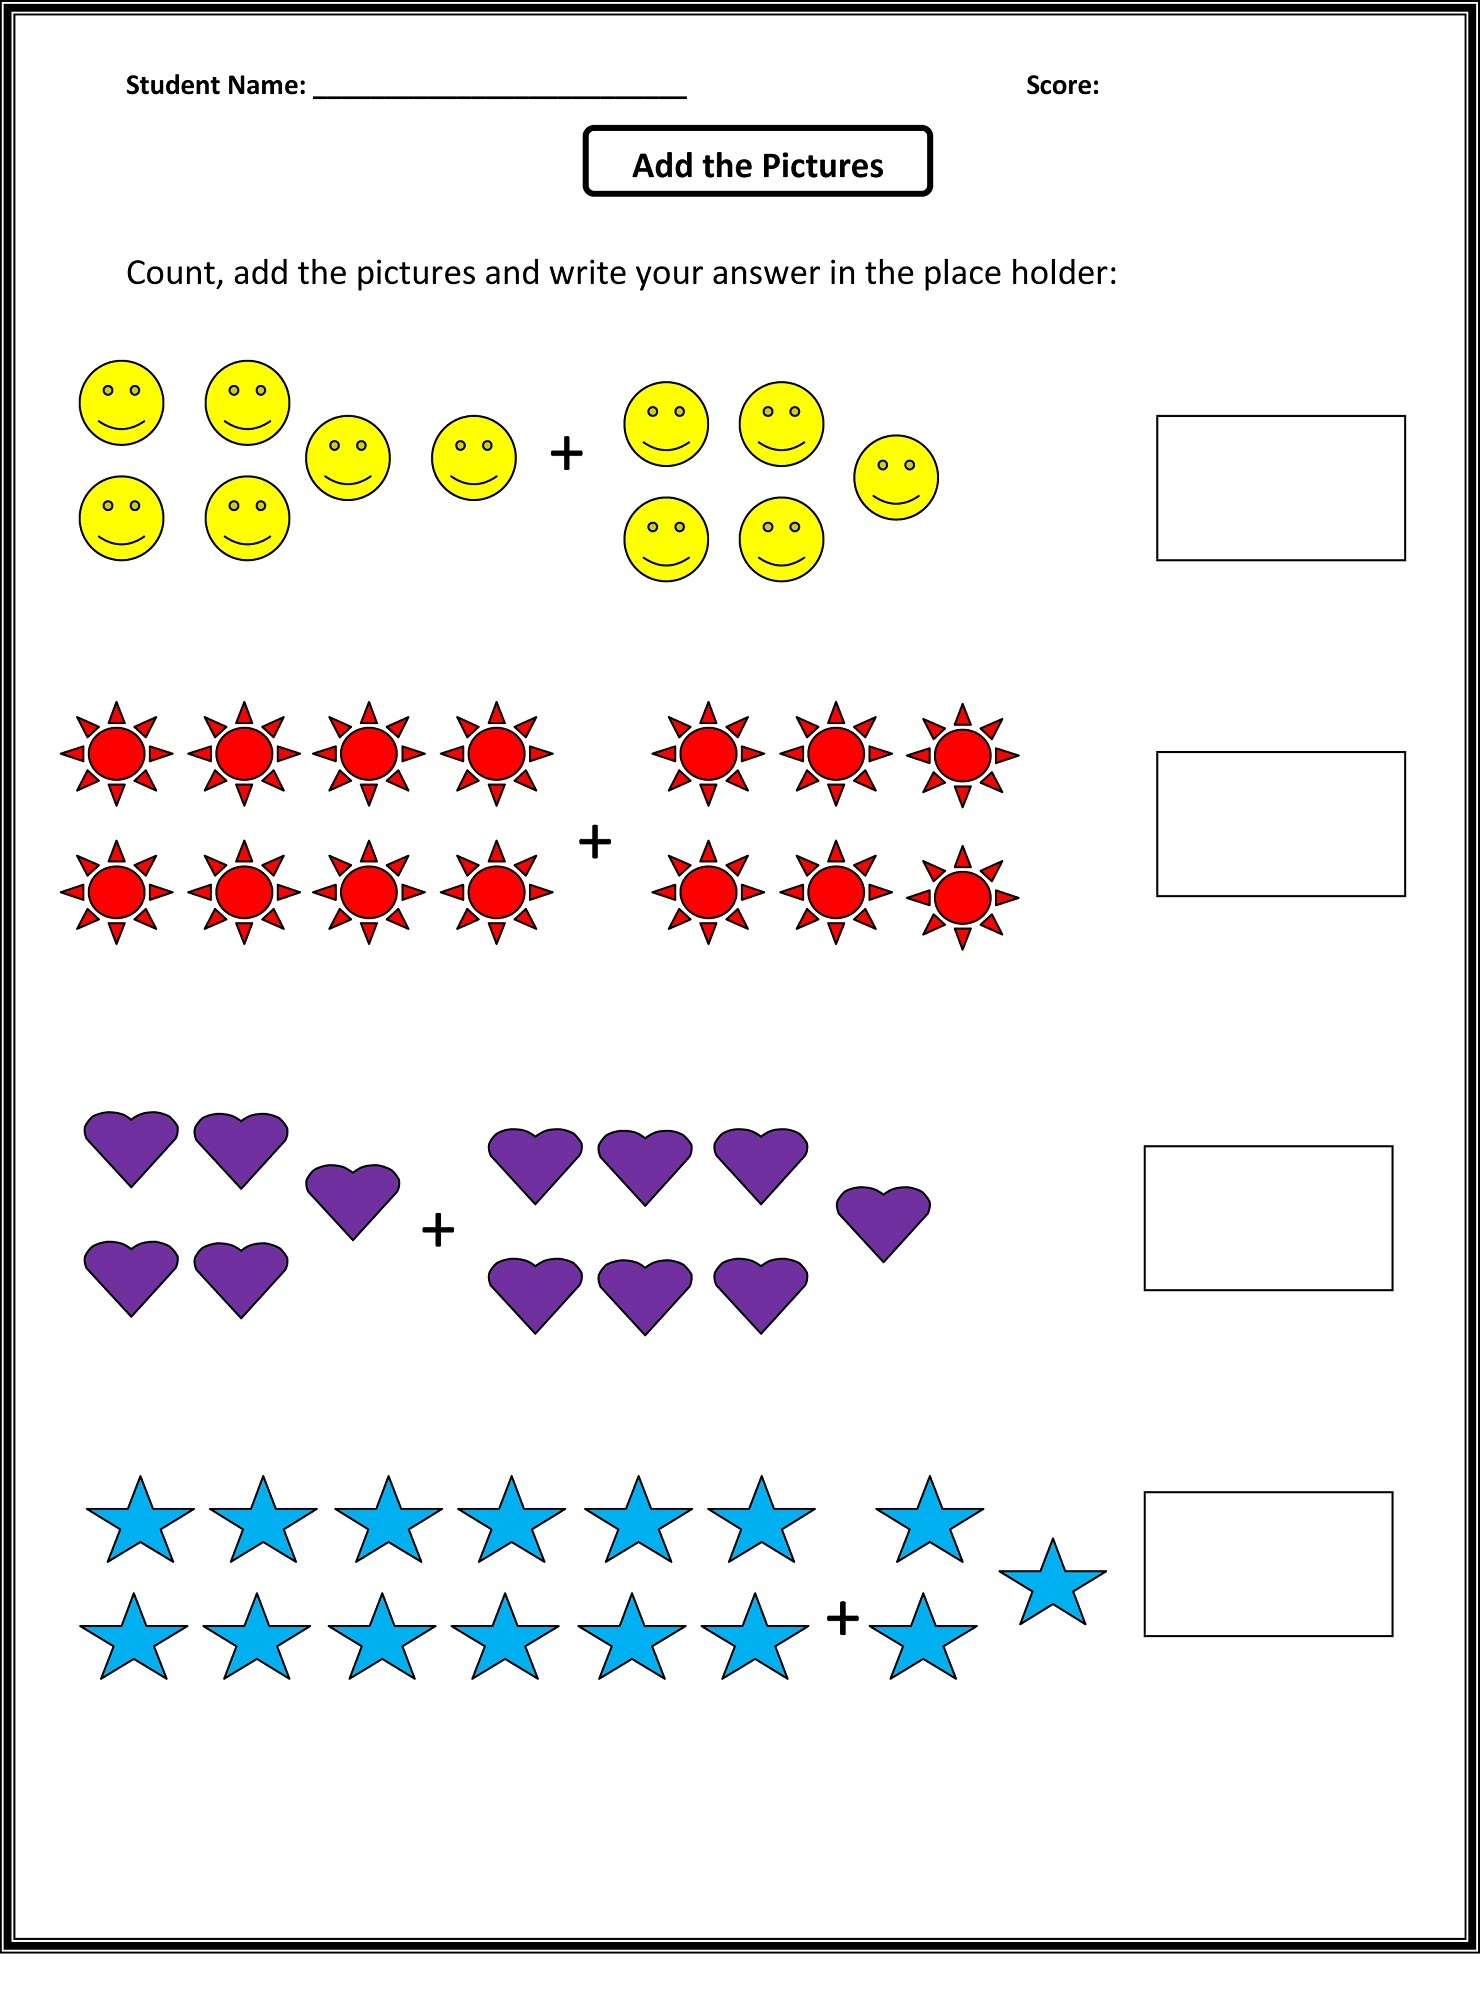 Math K5 Worksheets